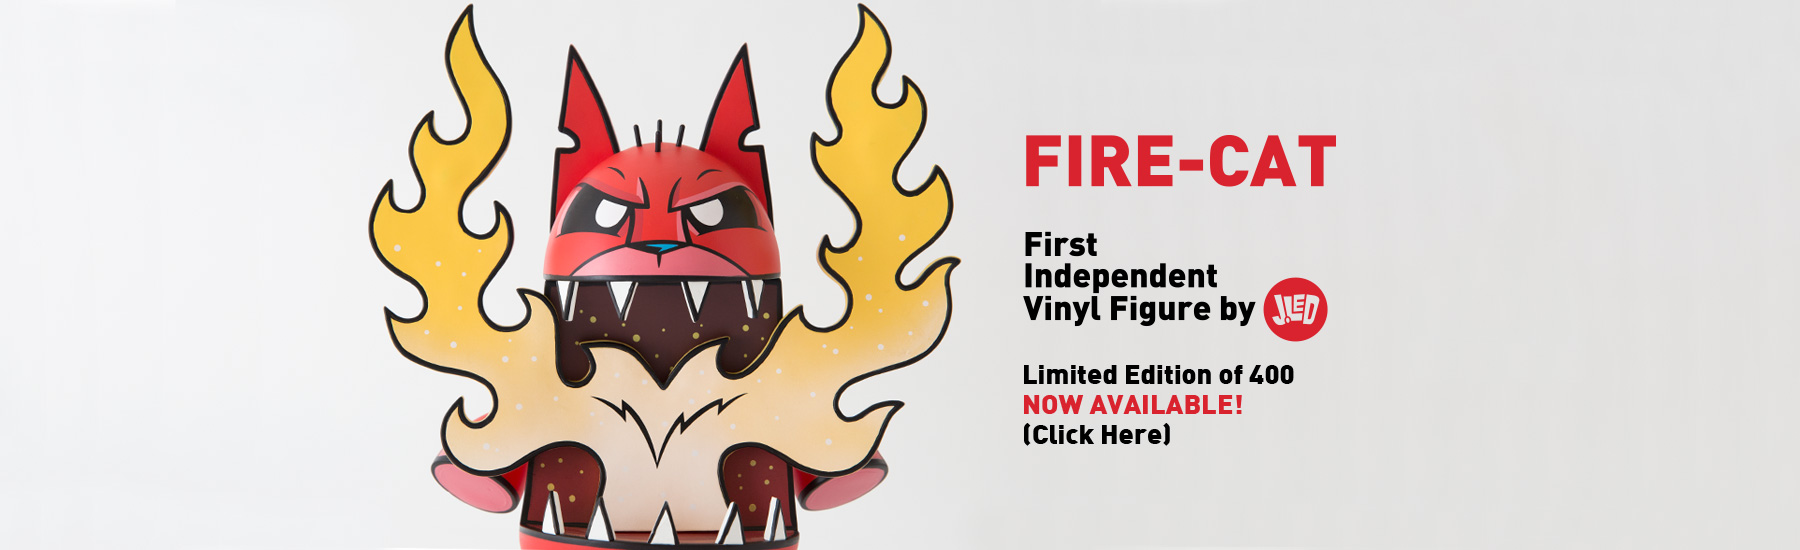 loading Fire-Cat Now Available banner